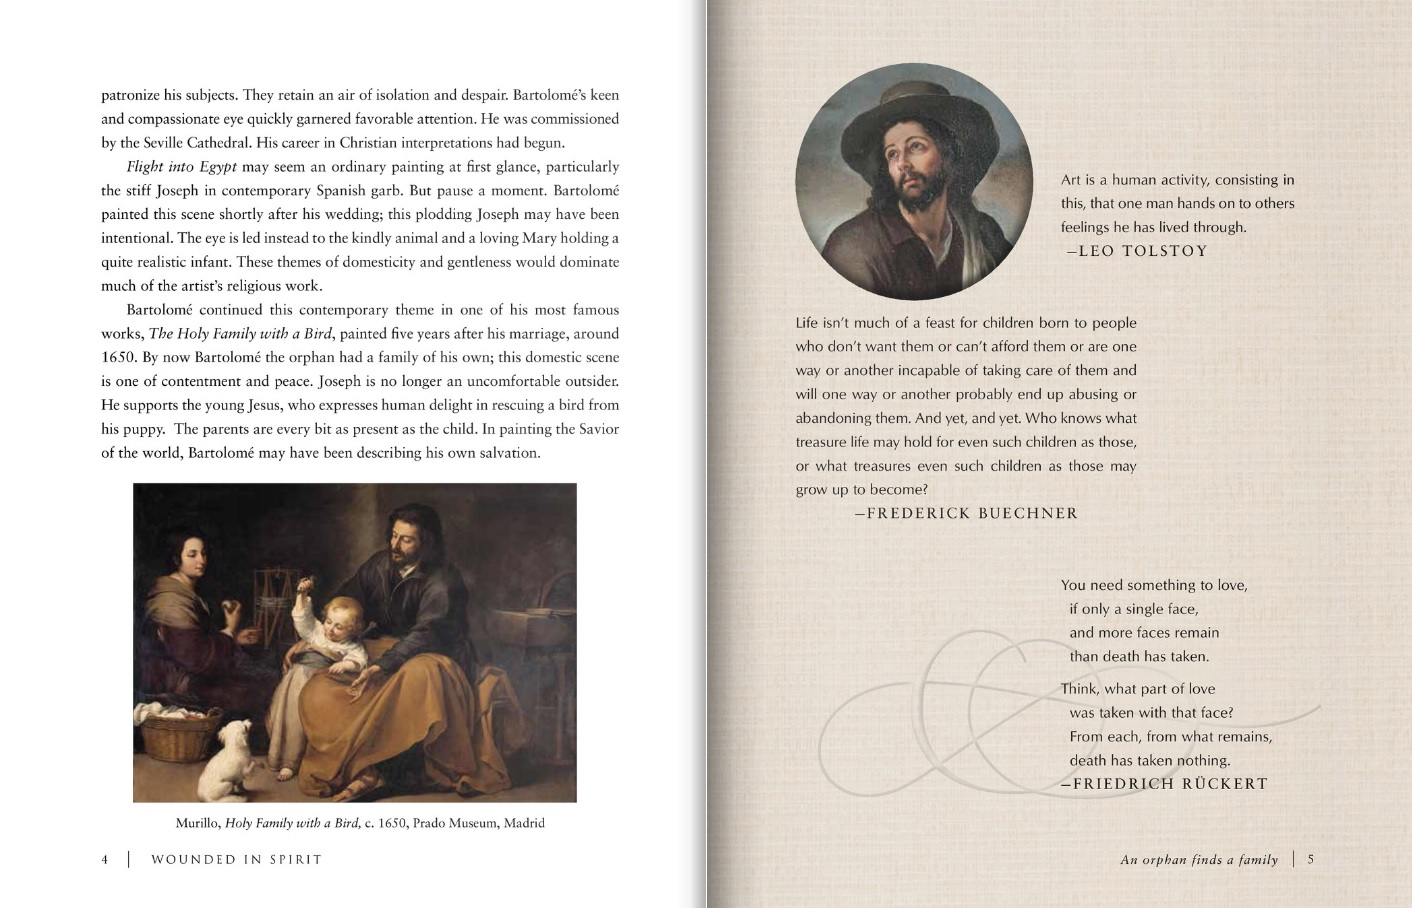 Wounded in Spirit excerpt (Bartolome Murillo)